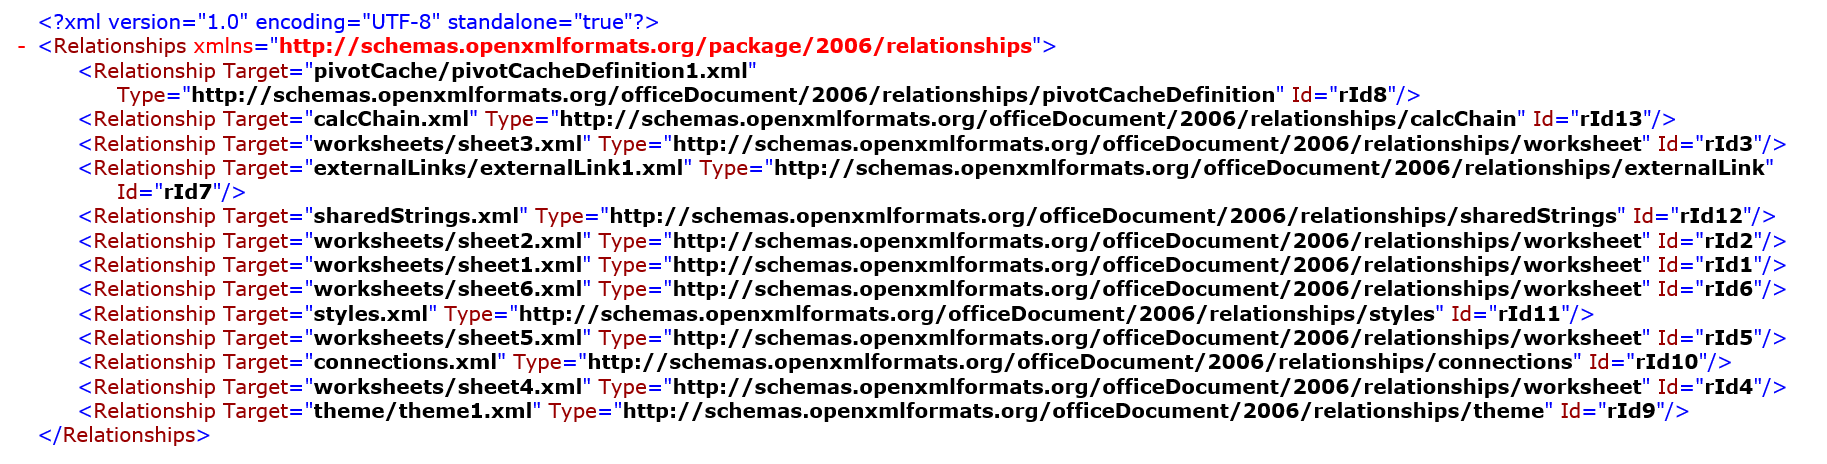 liberating data from spreadmarts and excel aka ooxml sonra